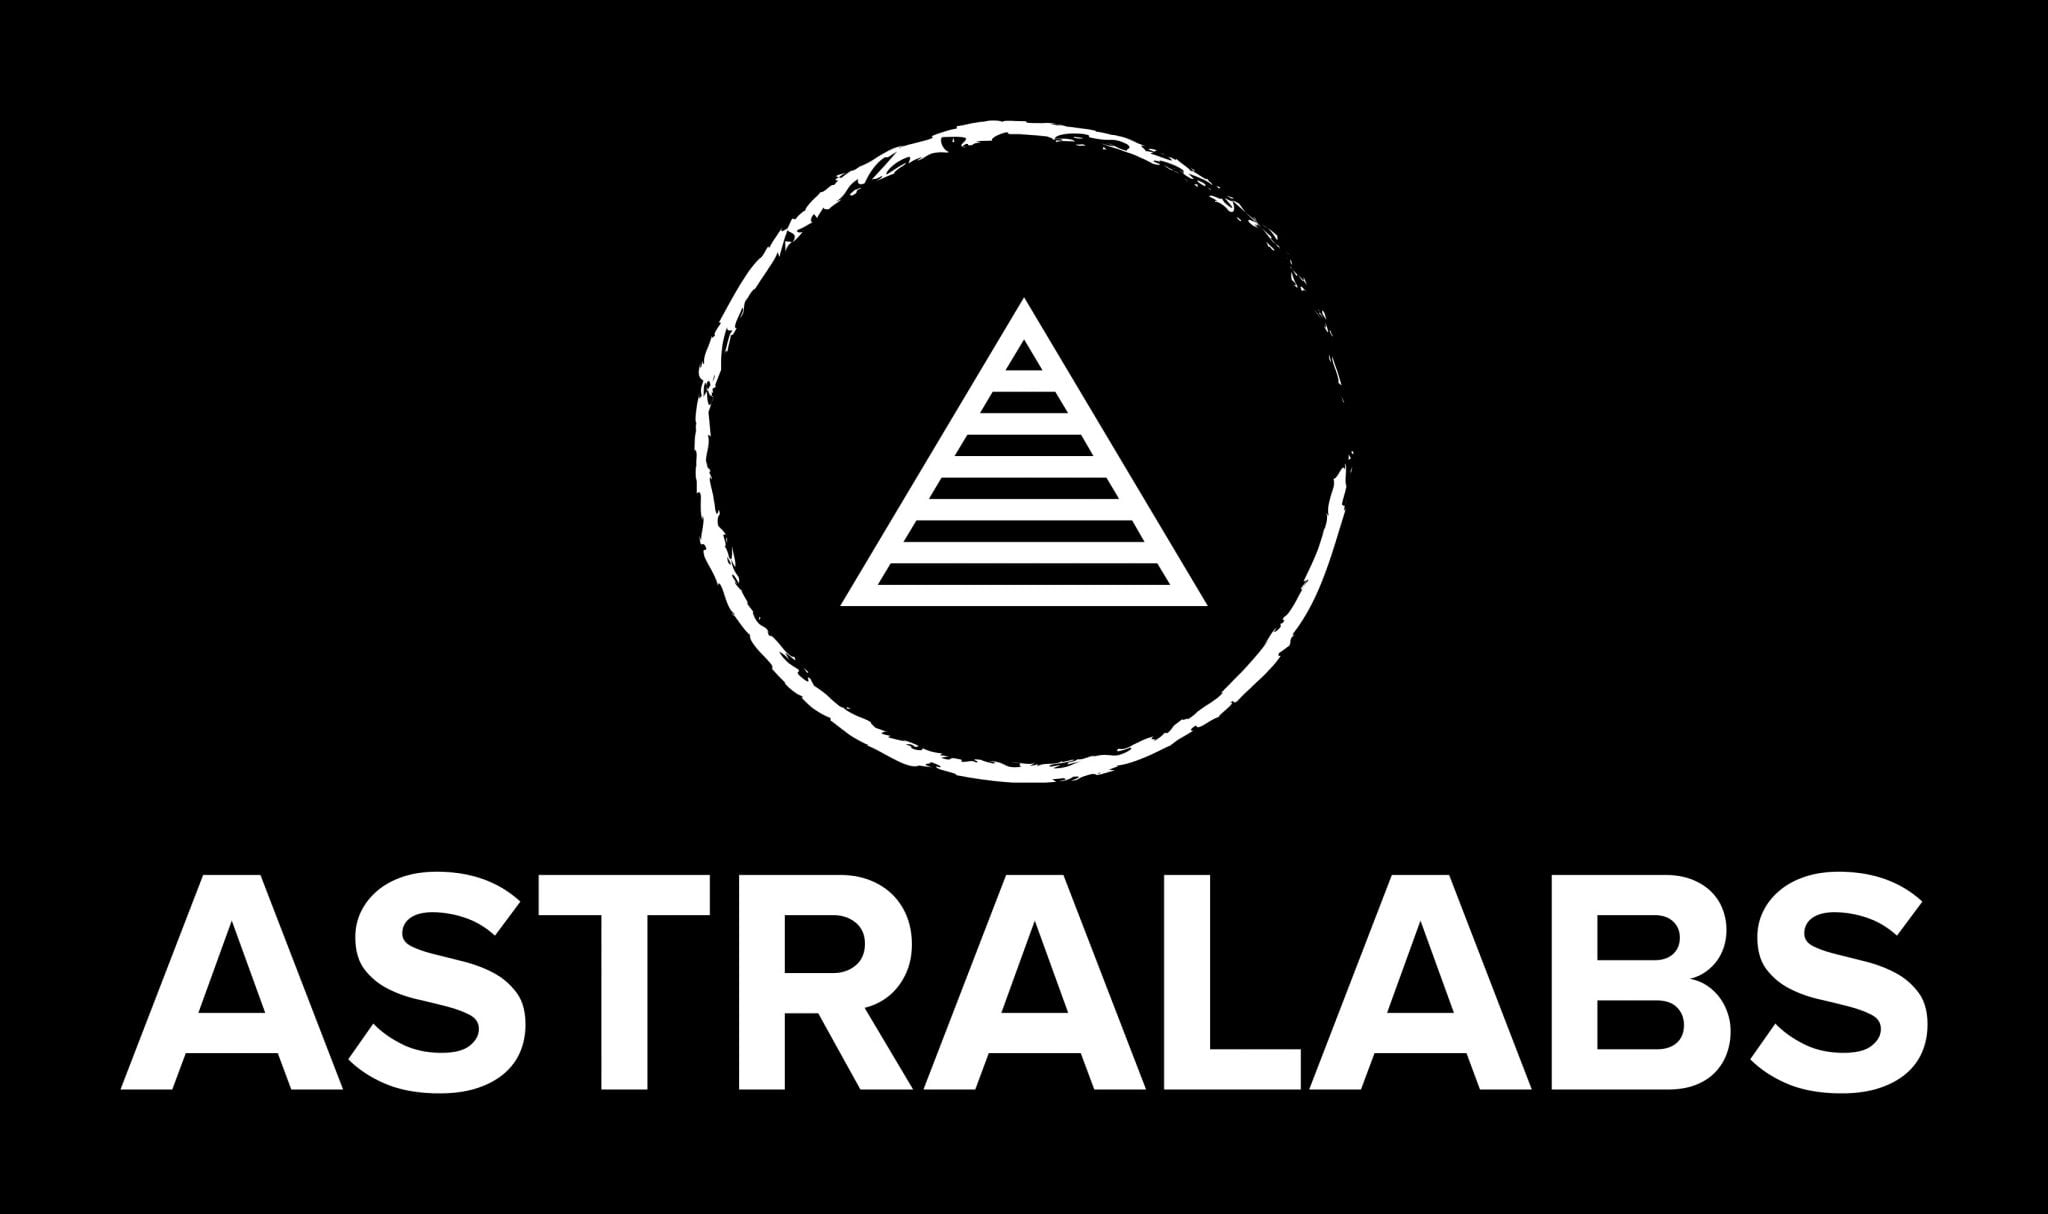 ASTRALABS Raises $100,000 in First 6 Hours